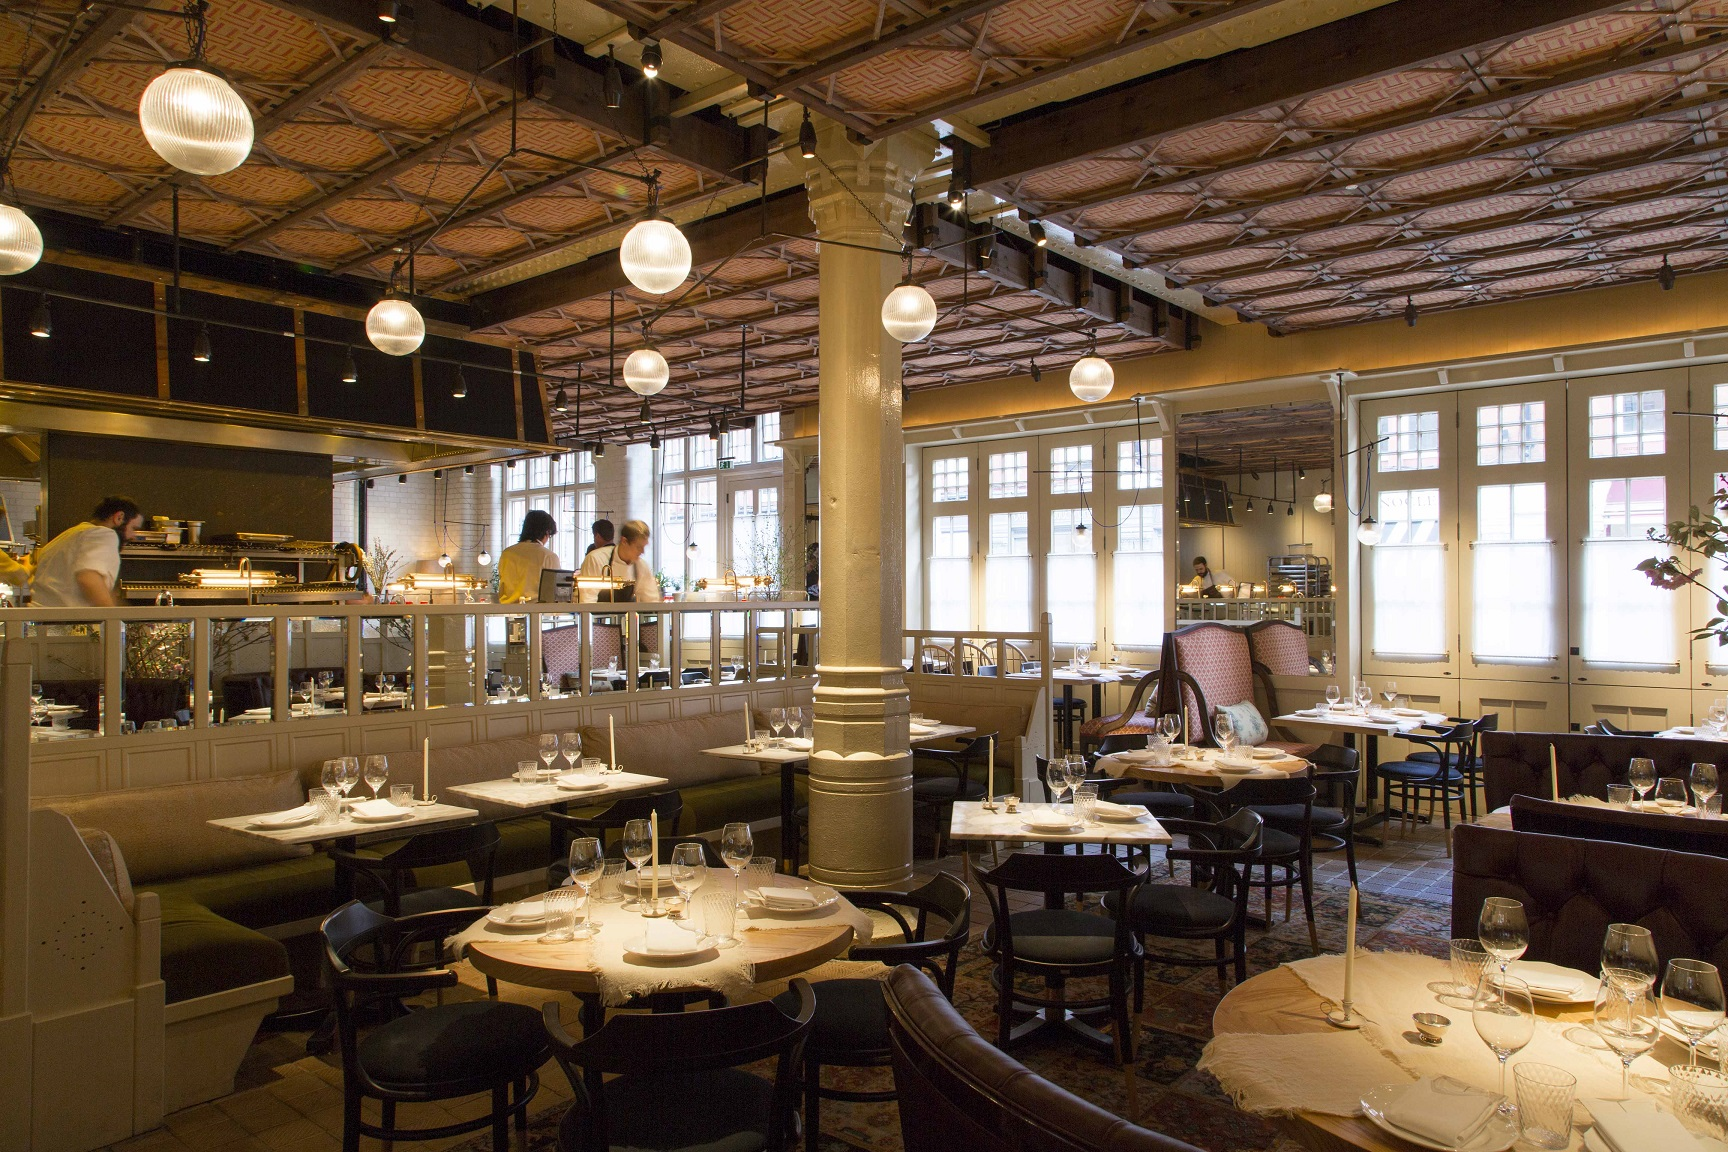 chiltern firehouse 13